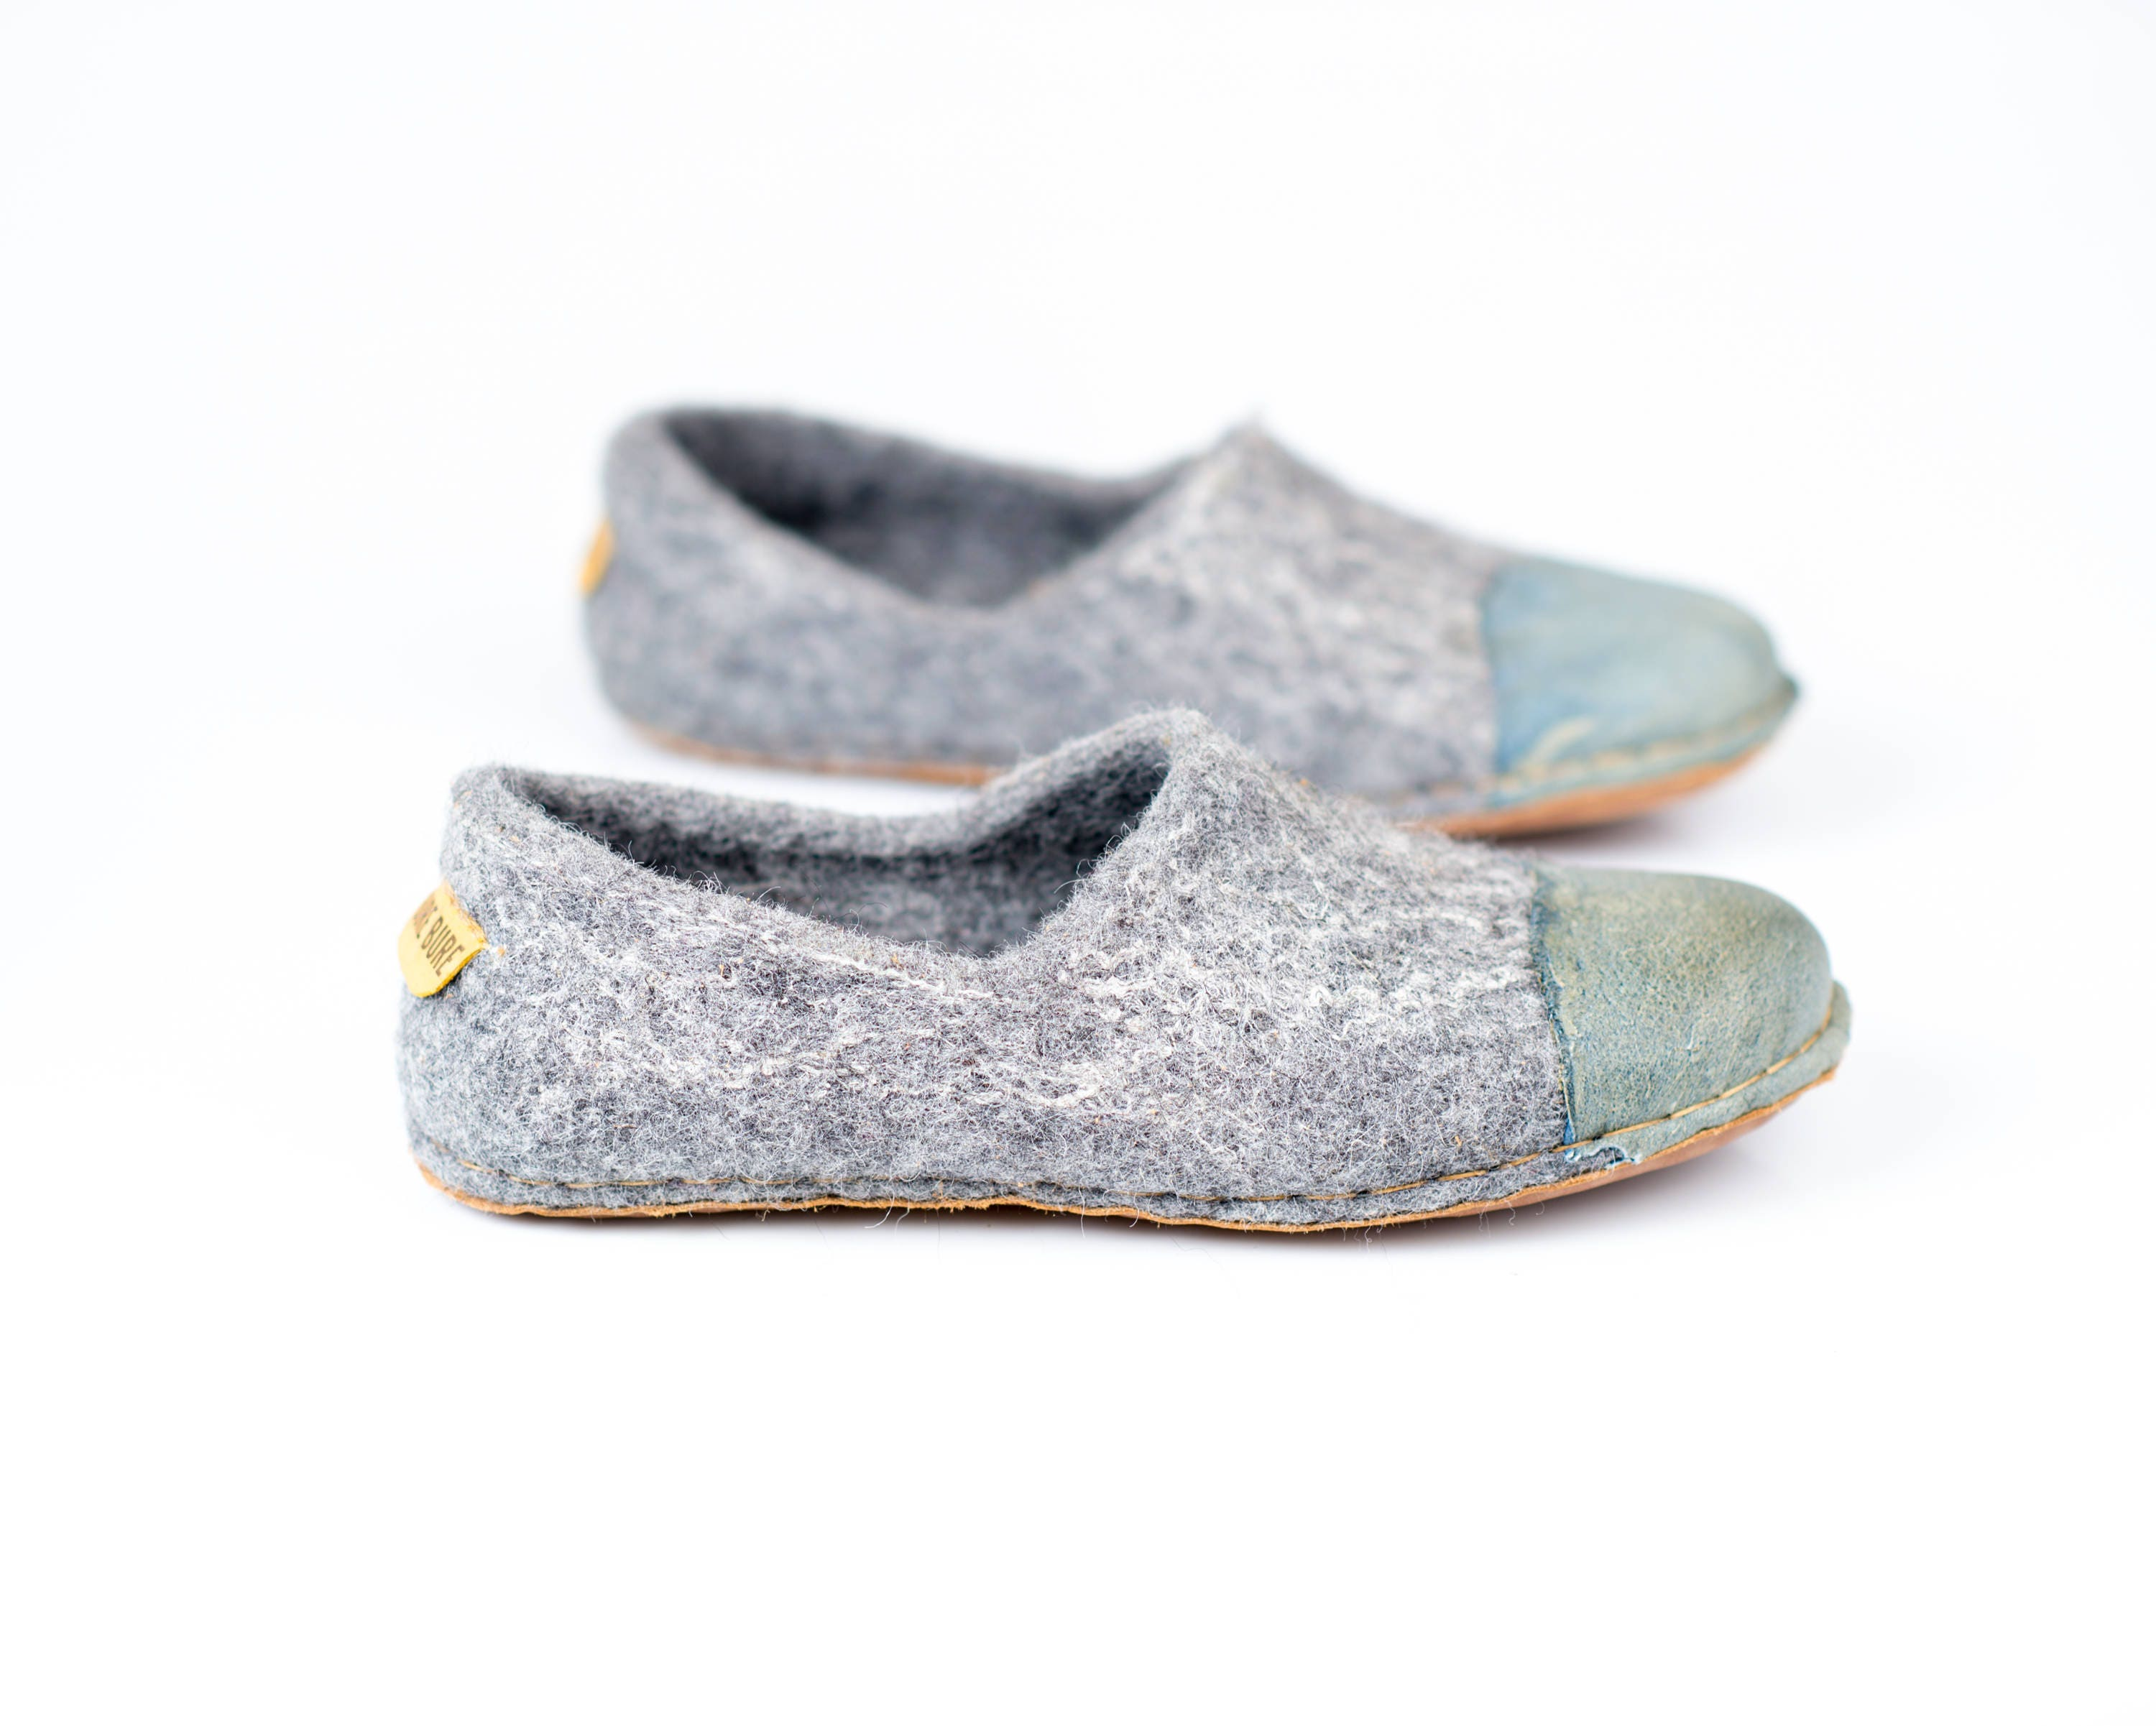 eaf98adf417357 Rustic gray felted woolen shoes for women with denim natural edge ...